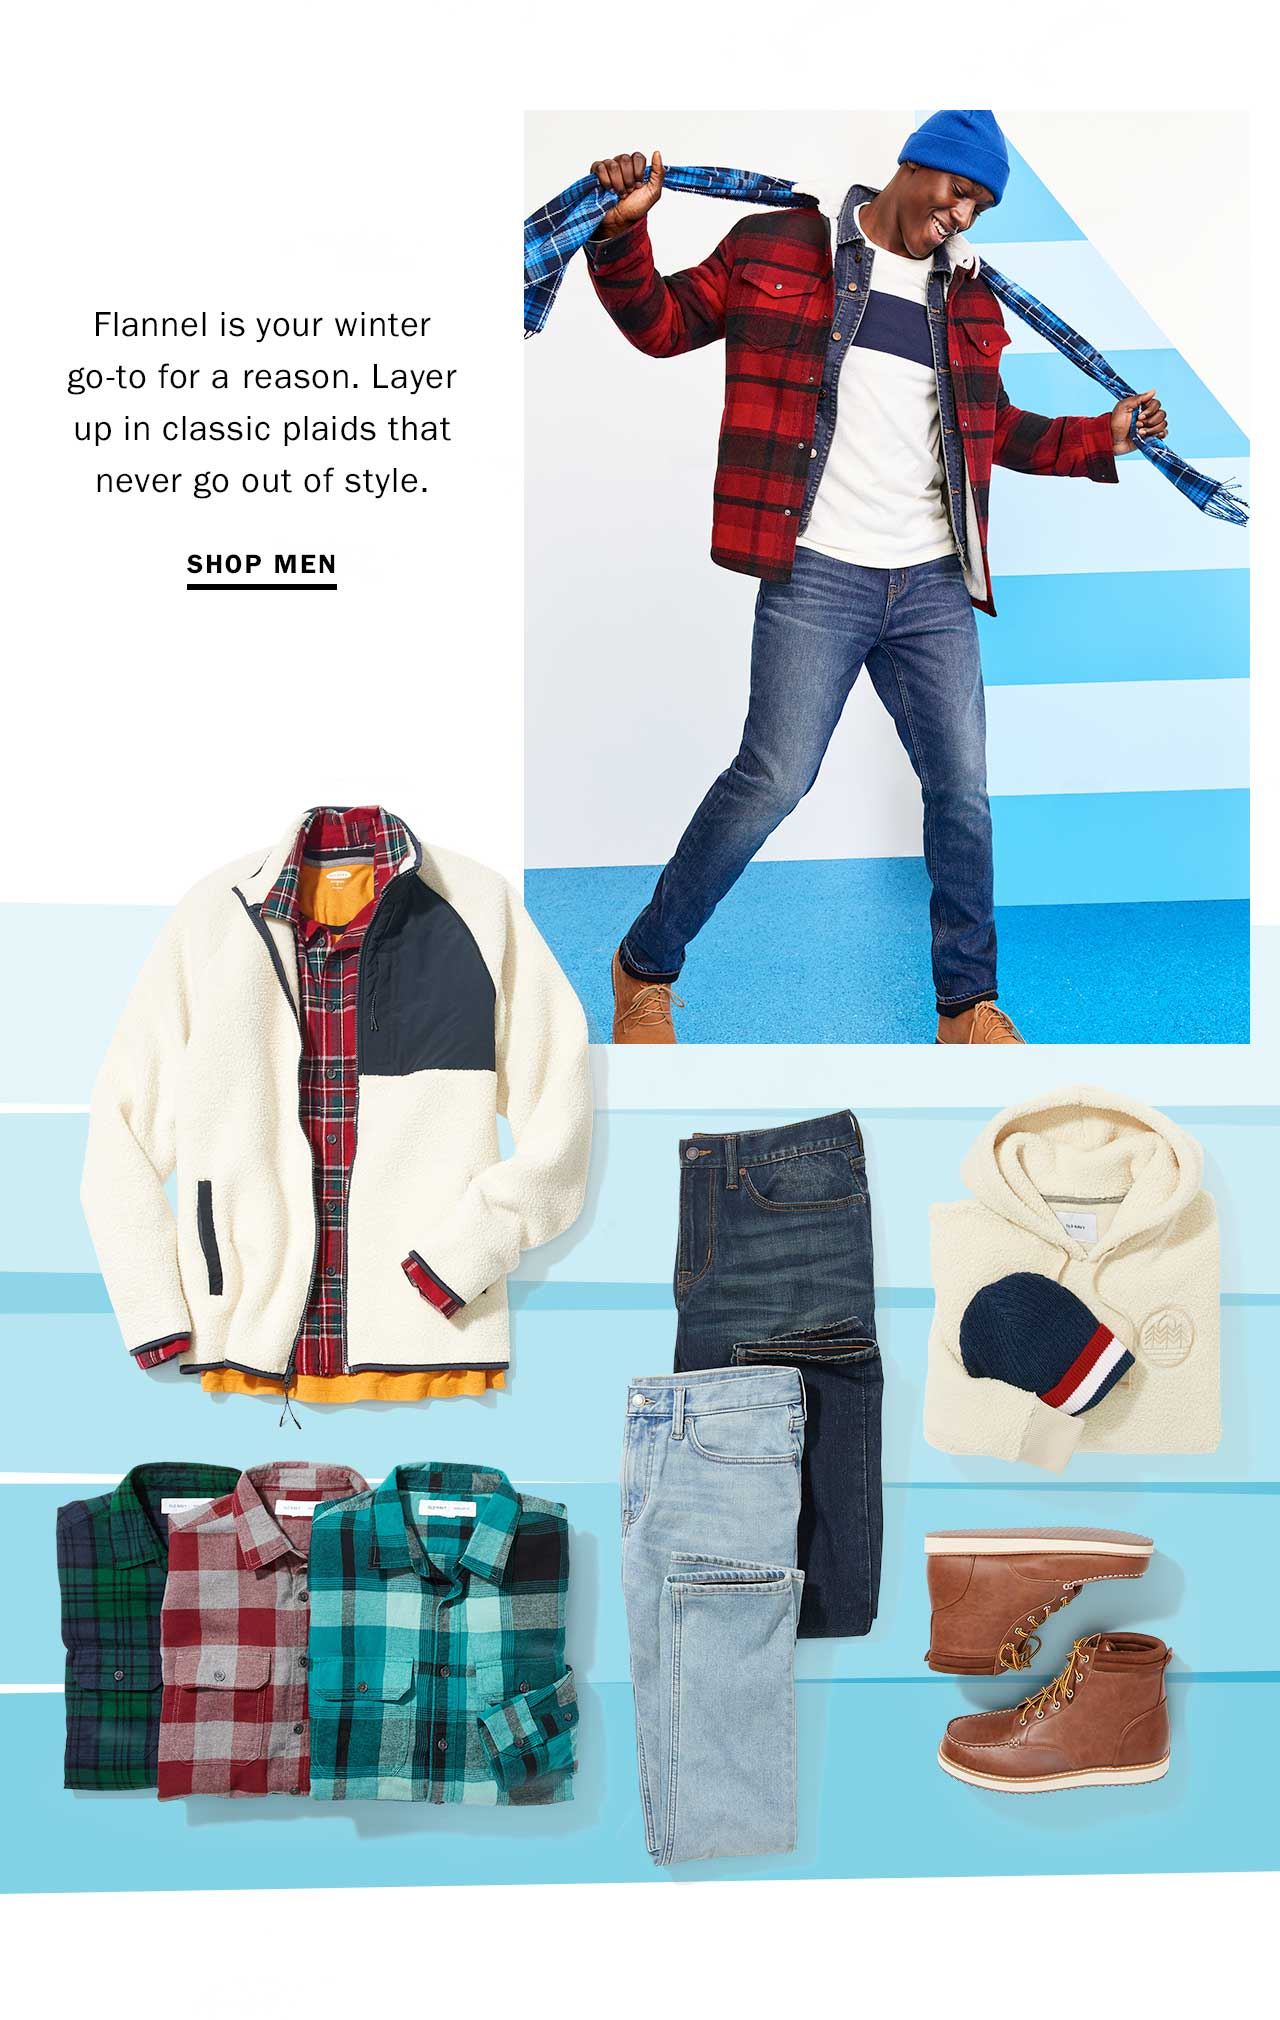 Flannel is your winter go-to for a reason.